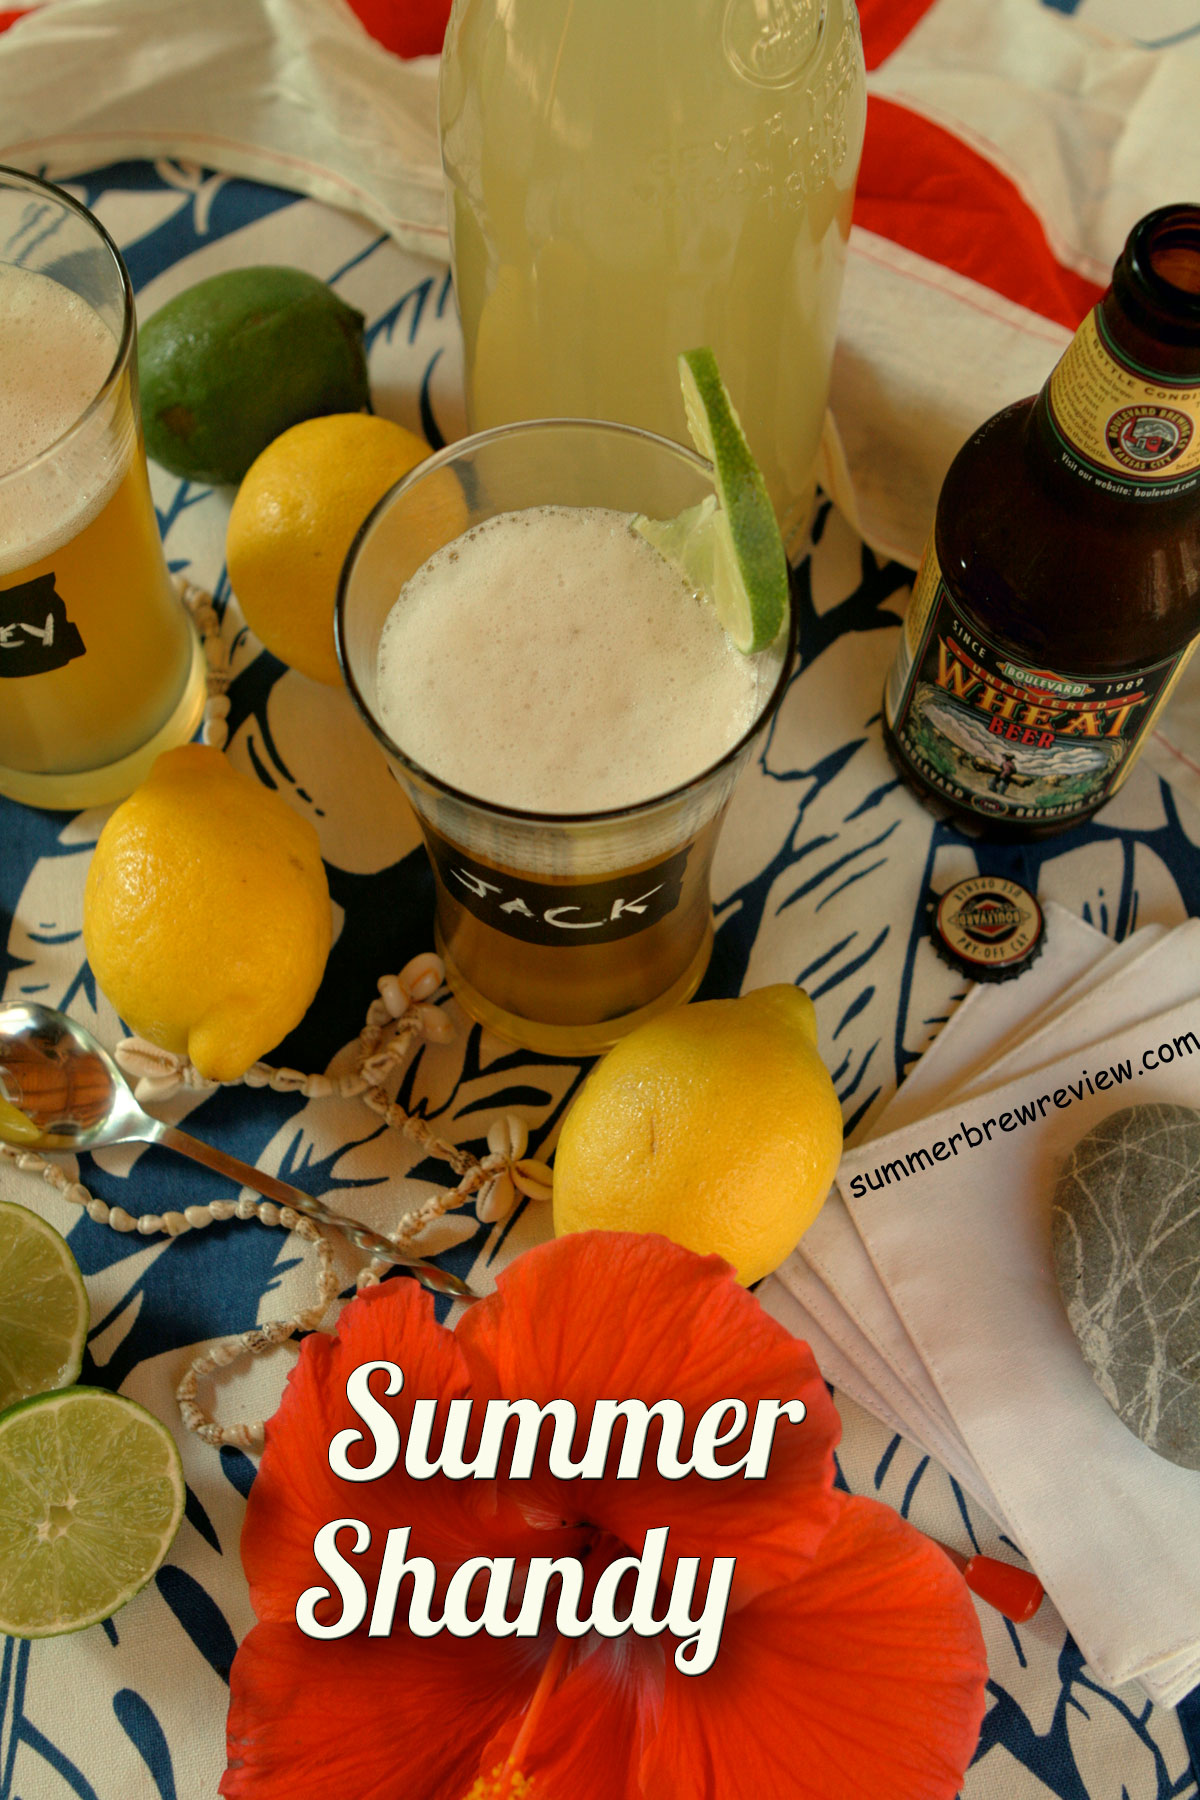 Best homemade summer shandy with lemonade and beer.